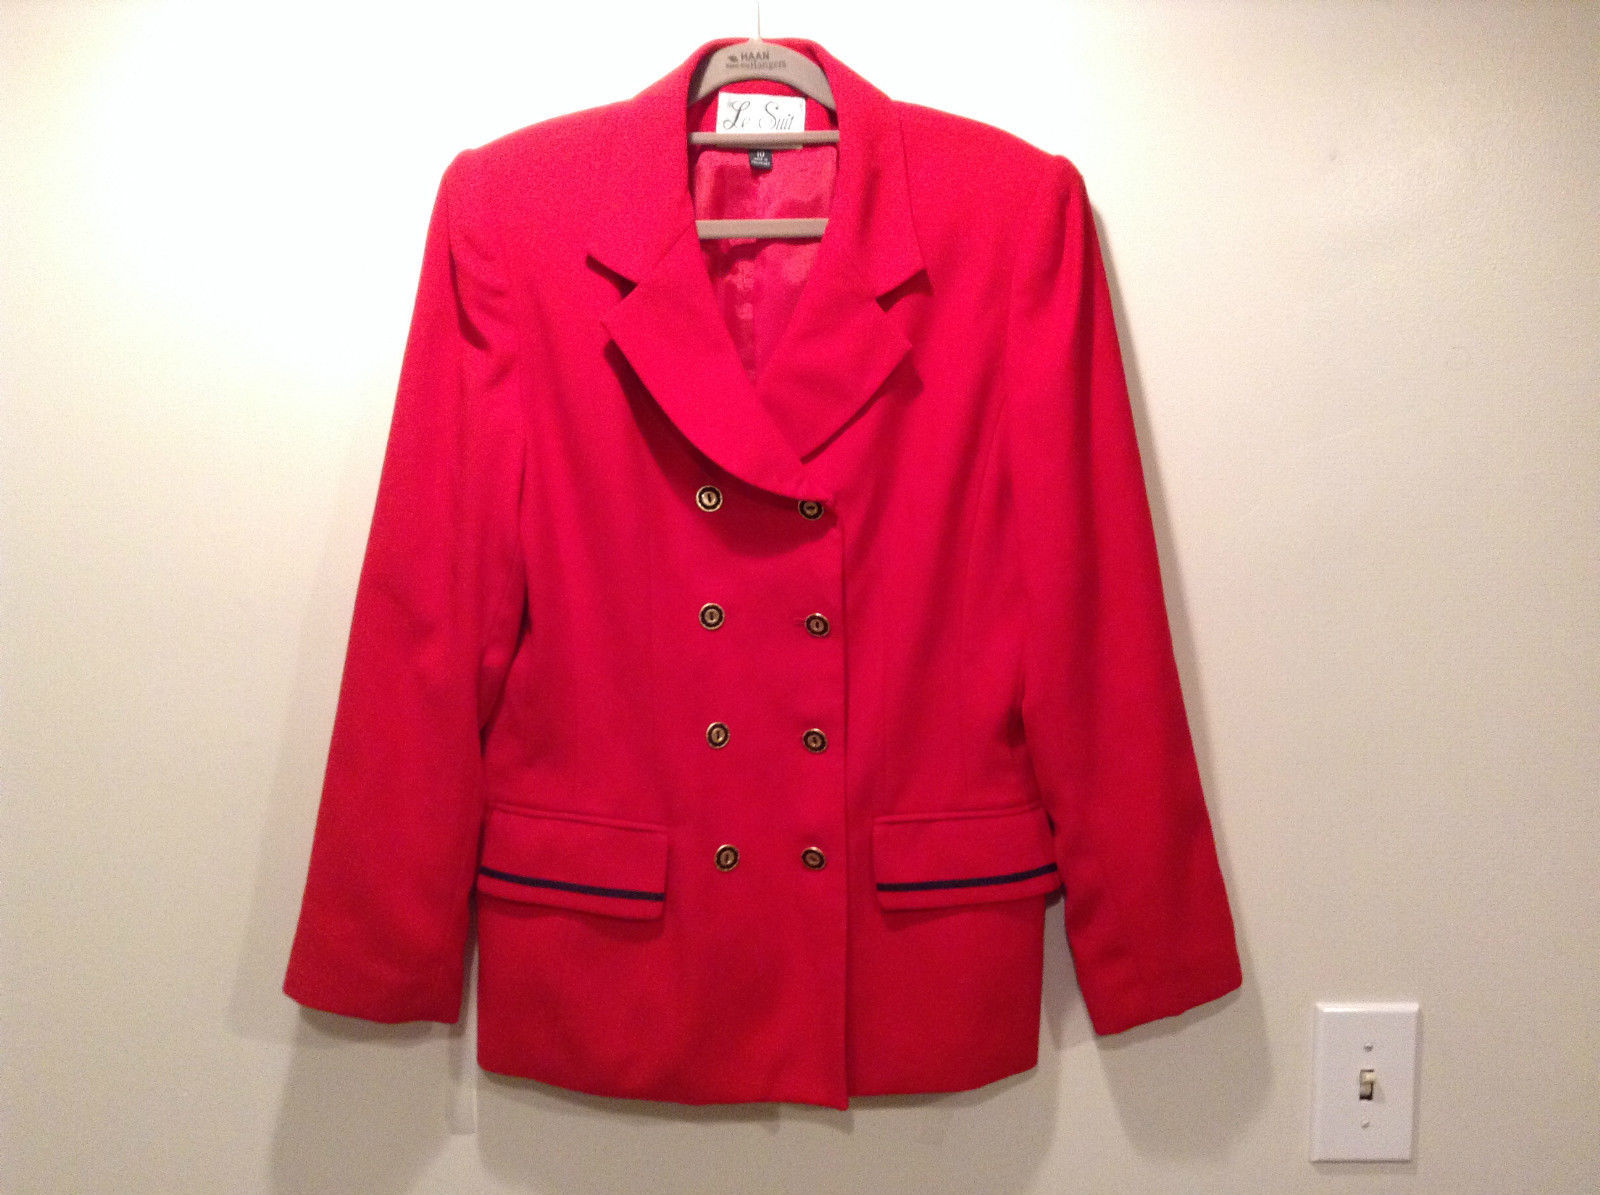 Very Nice Le Suit Size 10 Long Sleeve Lined Red Blazer Metal Buttons Closure